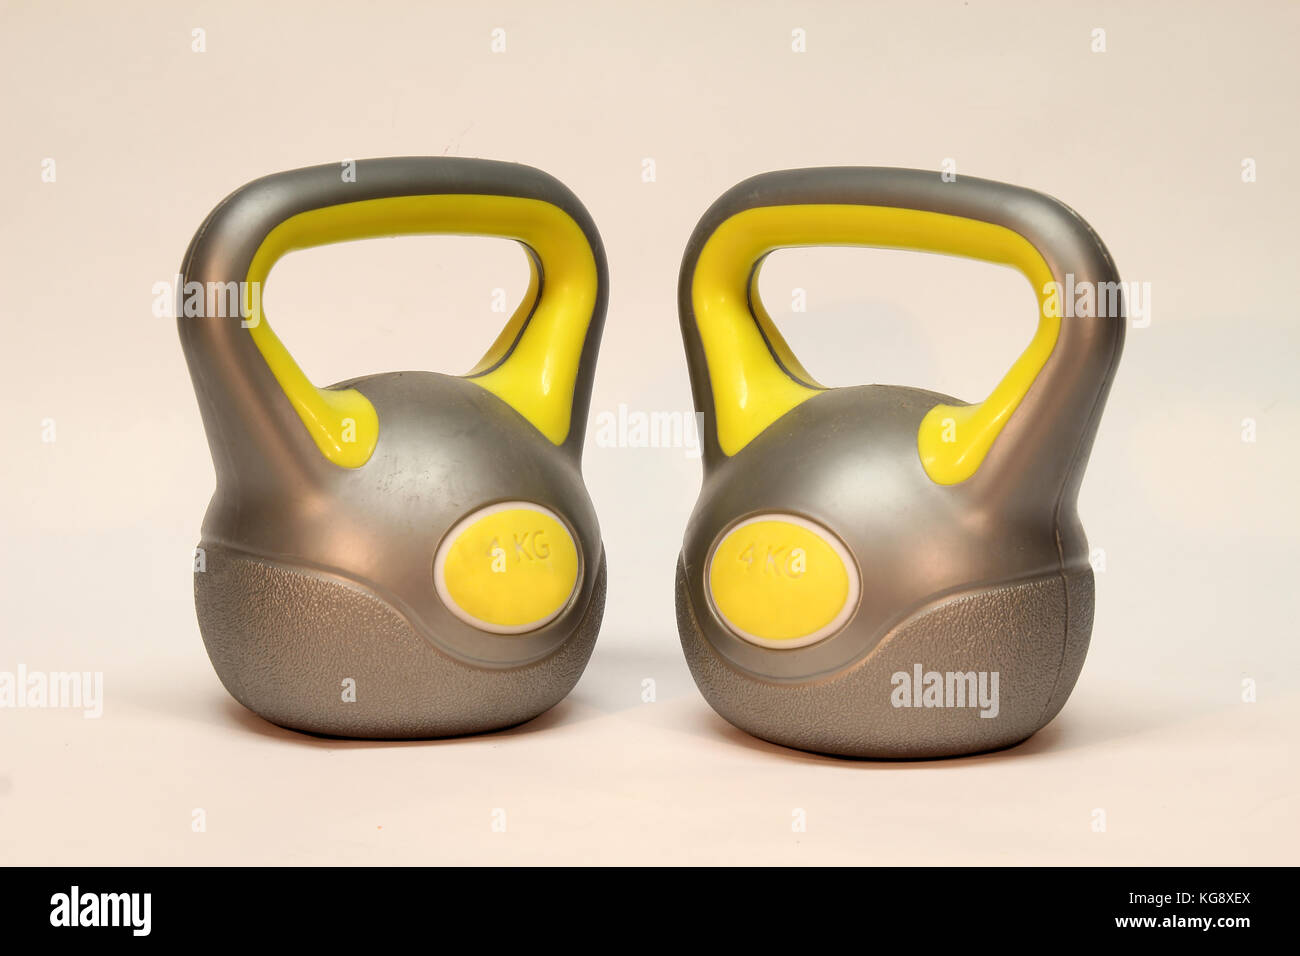 Kettlebell / Inscription on the weighing problem: 4 kg - Stock Image